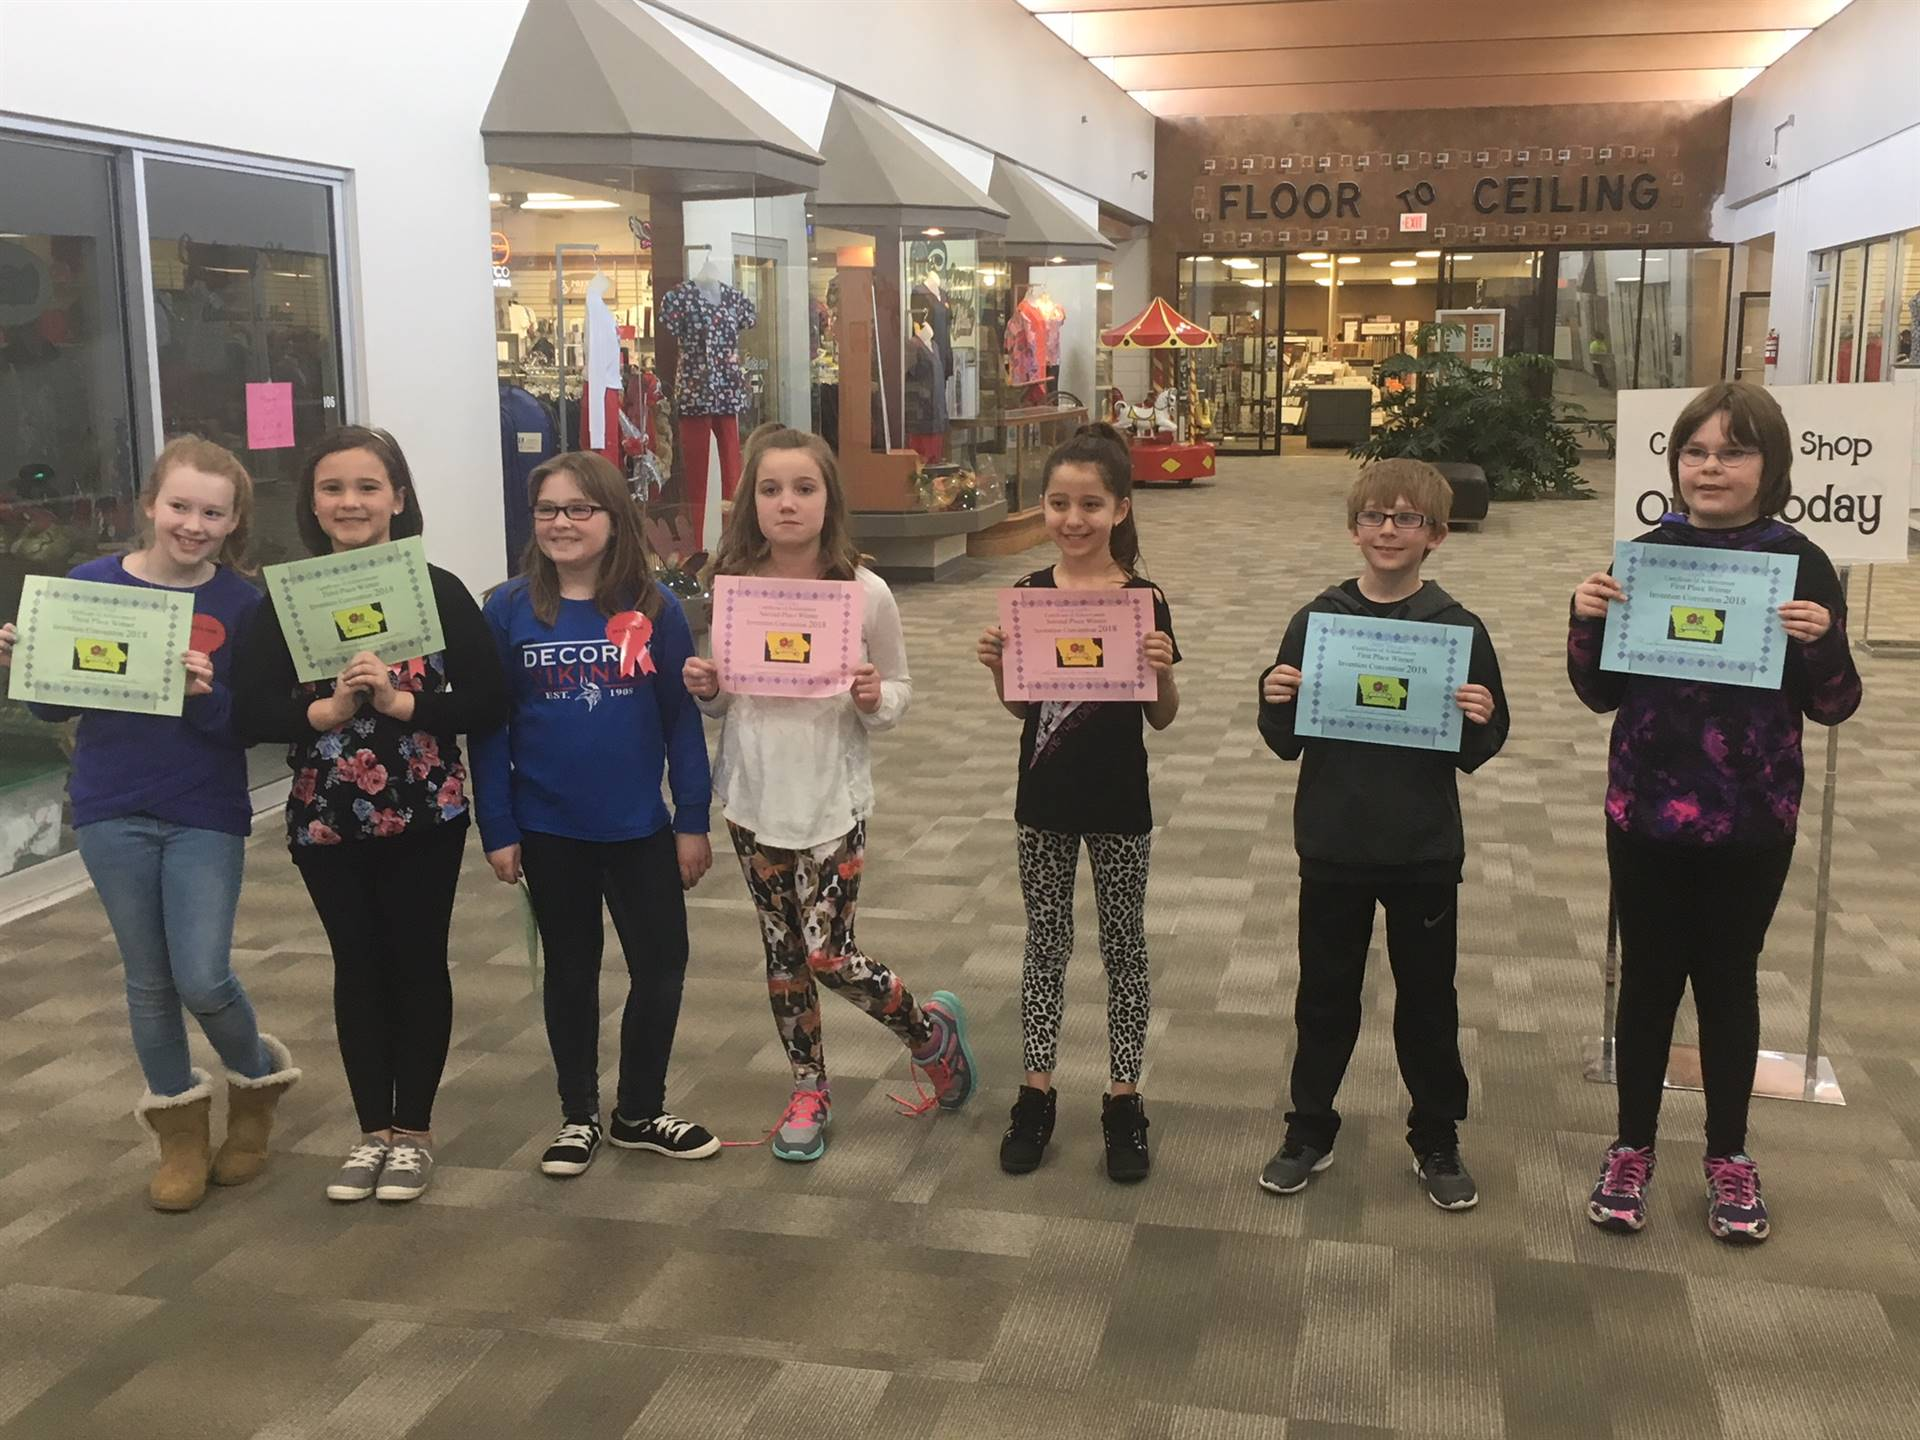 Seven elementary students standing and holding invention convention certificates